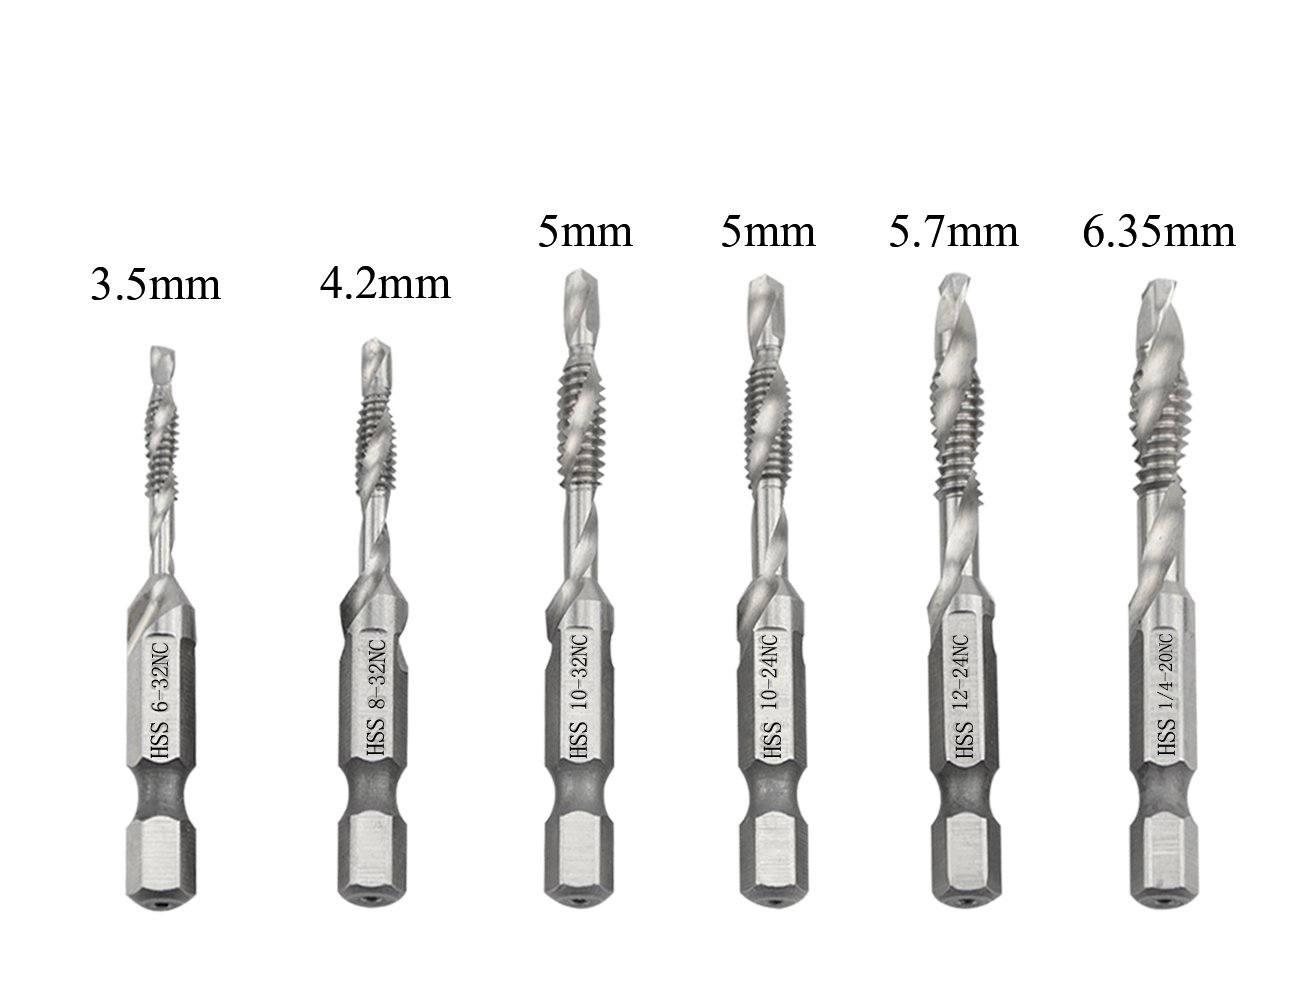 TOVOT 6 PCS HSS 4341 Combination Drill Bit Set 6-32NC 8-32NC 10-32NC 10-24 NC12-24NC 1/4-20NC with 1/4 Inch Shank Countersink Screws Tap Bit 3.5 mm-6.35 mm